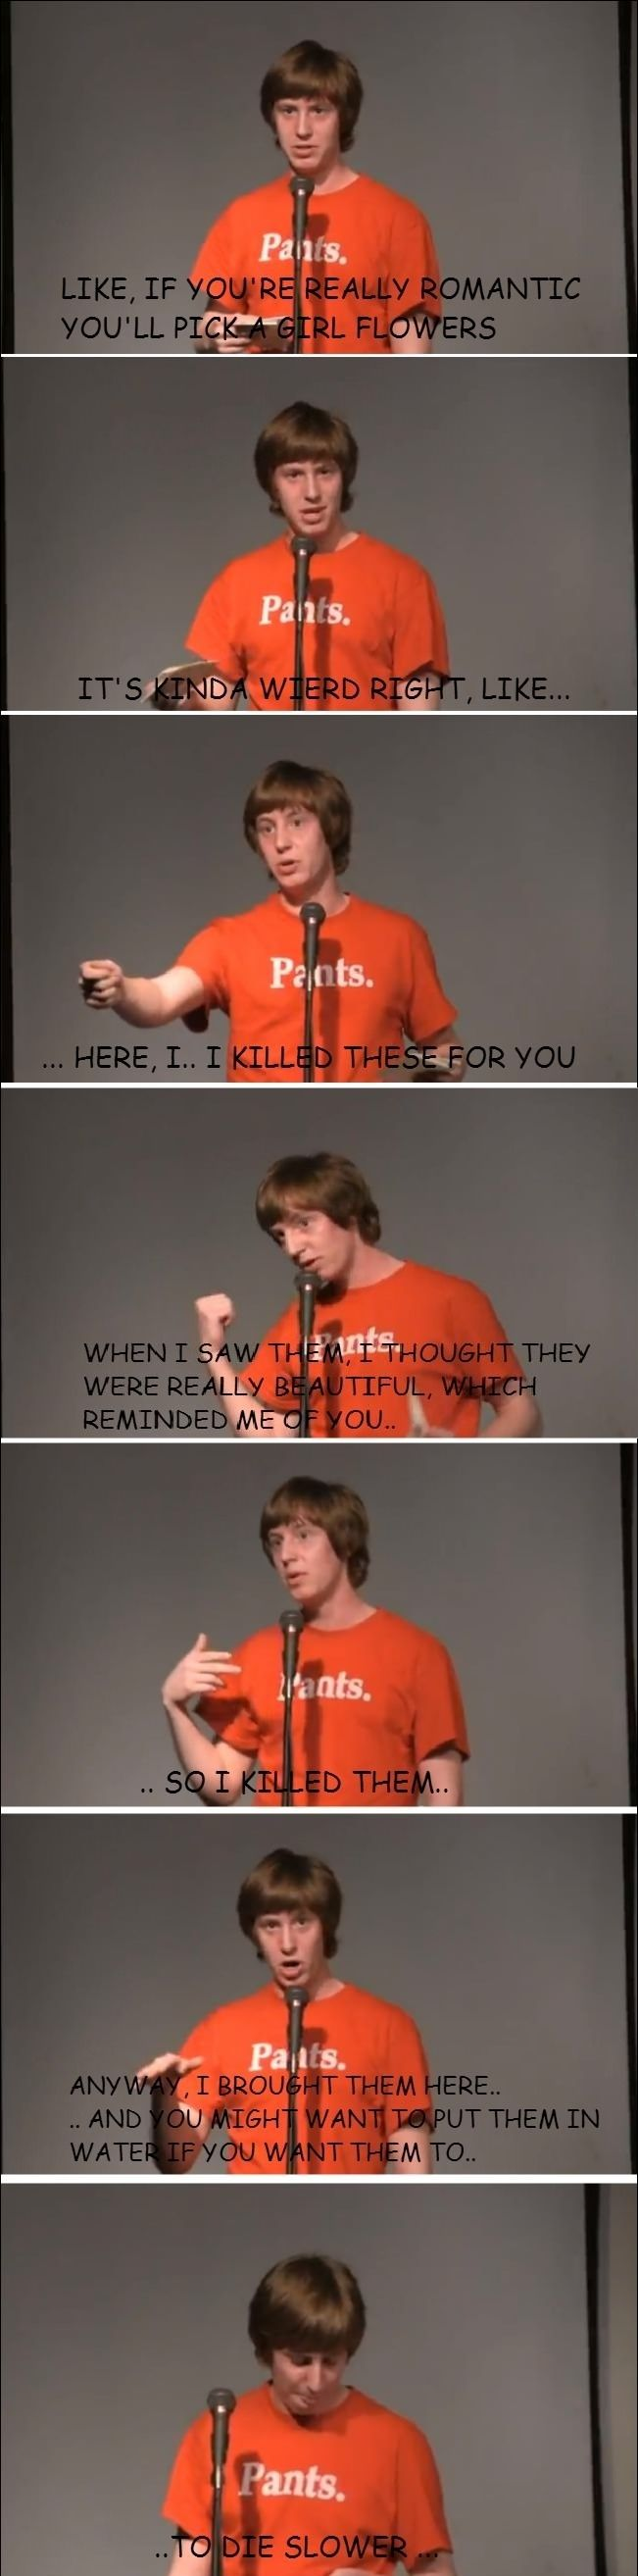 Never giving flowers to girls // funny pictures - funny photos - funny images - funny pics - funny quotes - #lol #humor #funnypictures